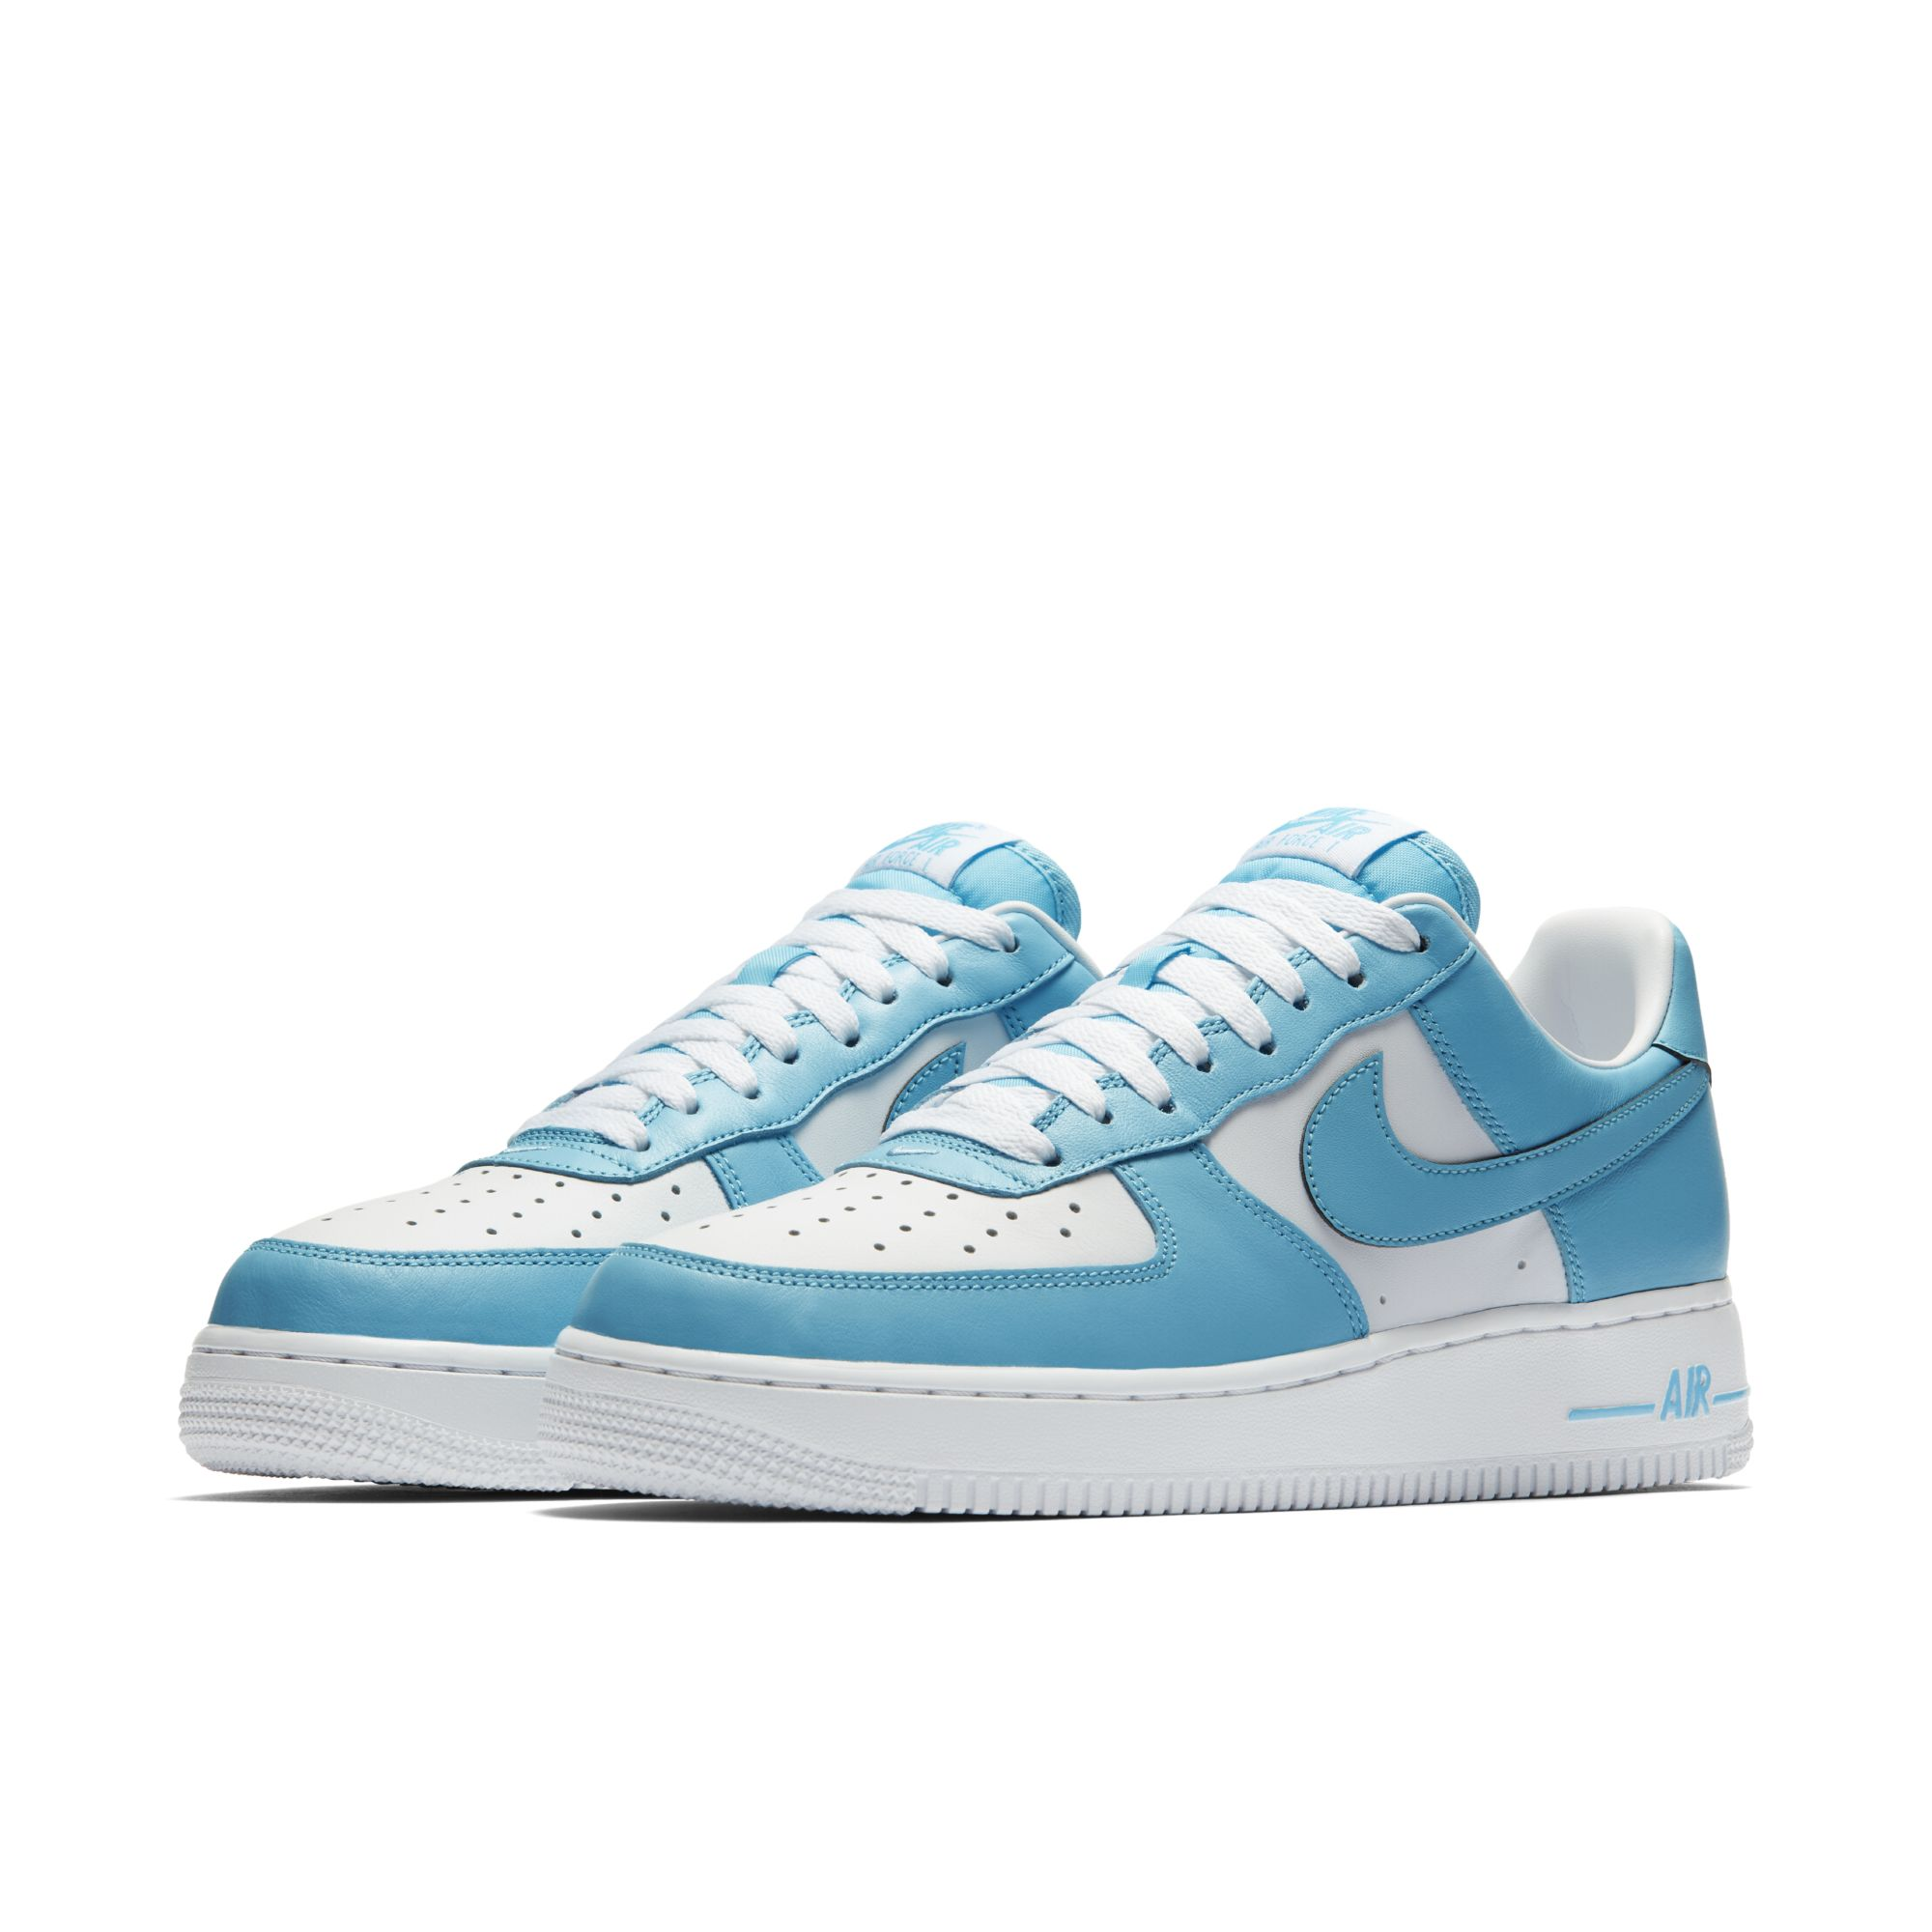 This Is the 'UNC' Air Force 1 Low We've